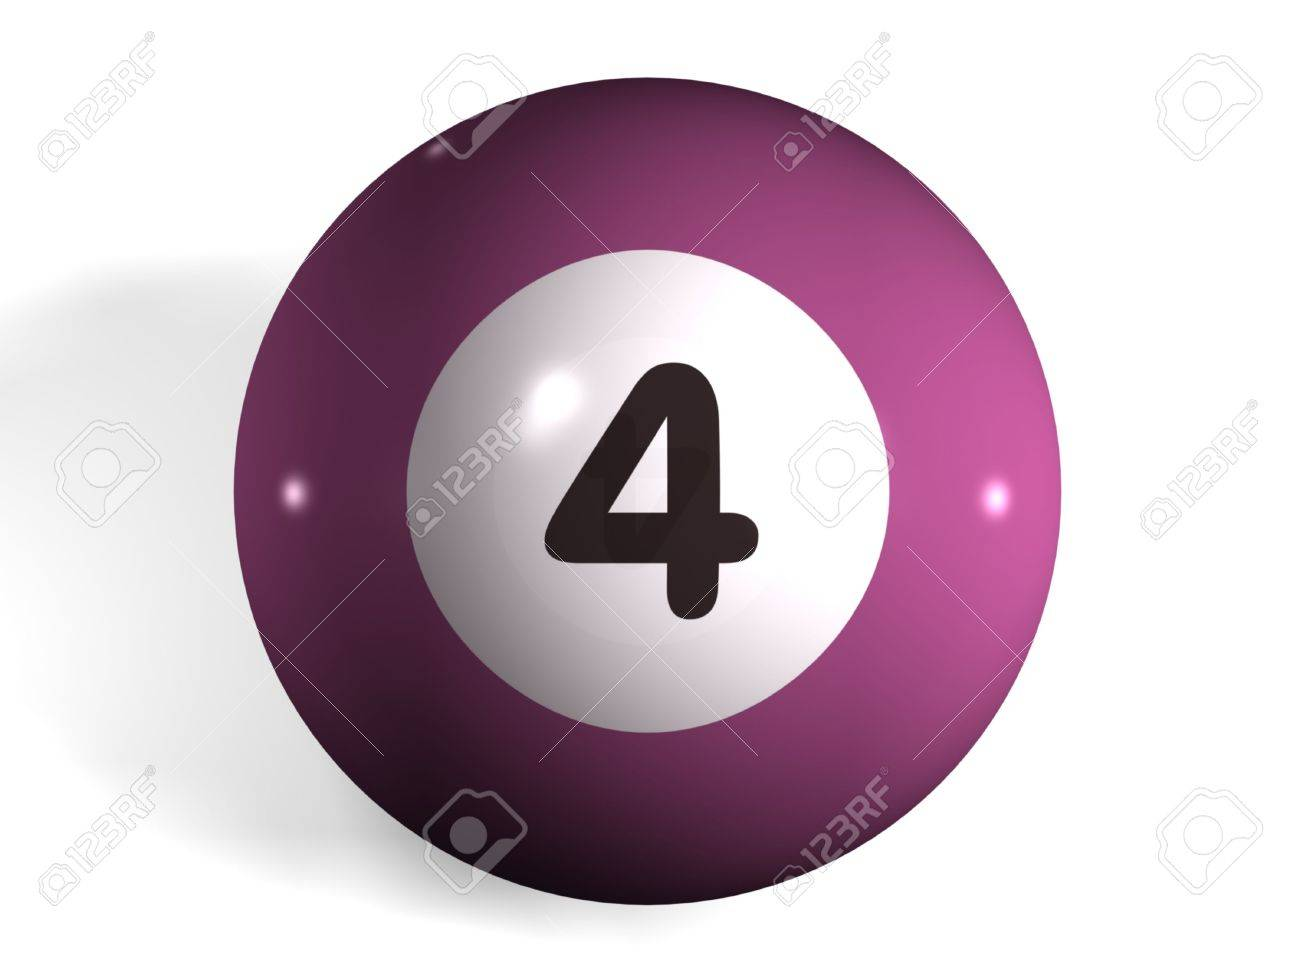 isolated 3d pool ball number 4 stock photo, picture and royalty